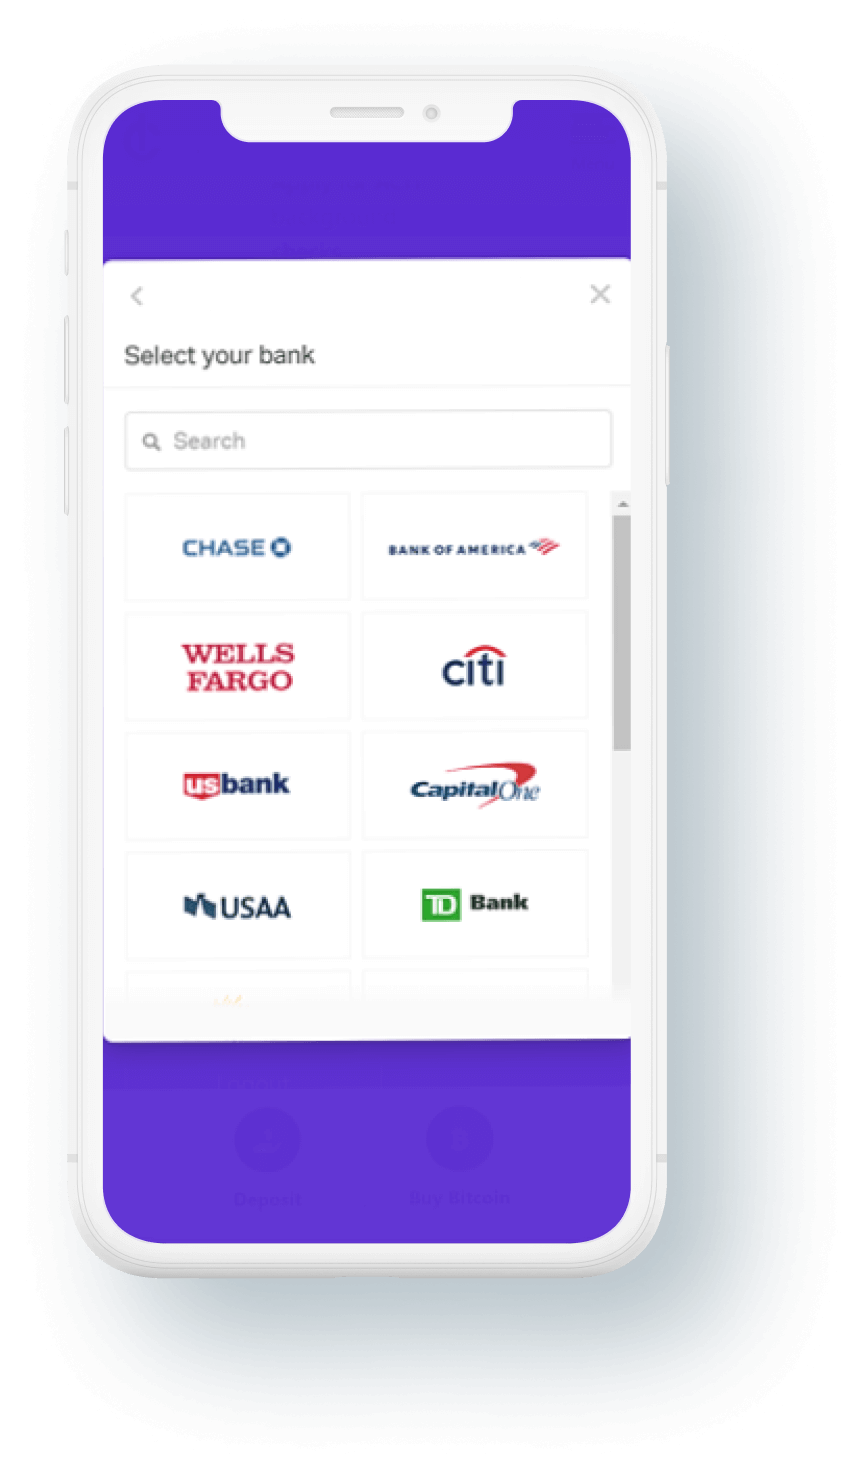 cryptodispensers-mobile-bank-selection